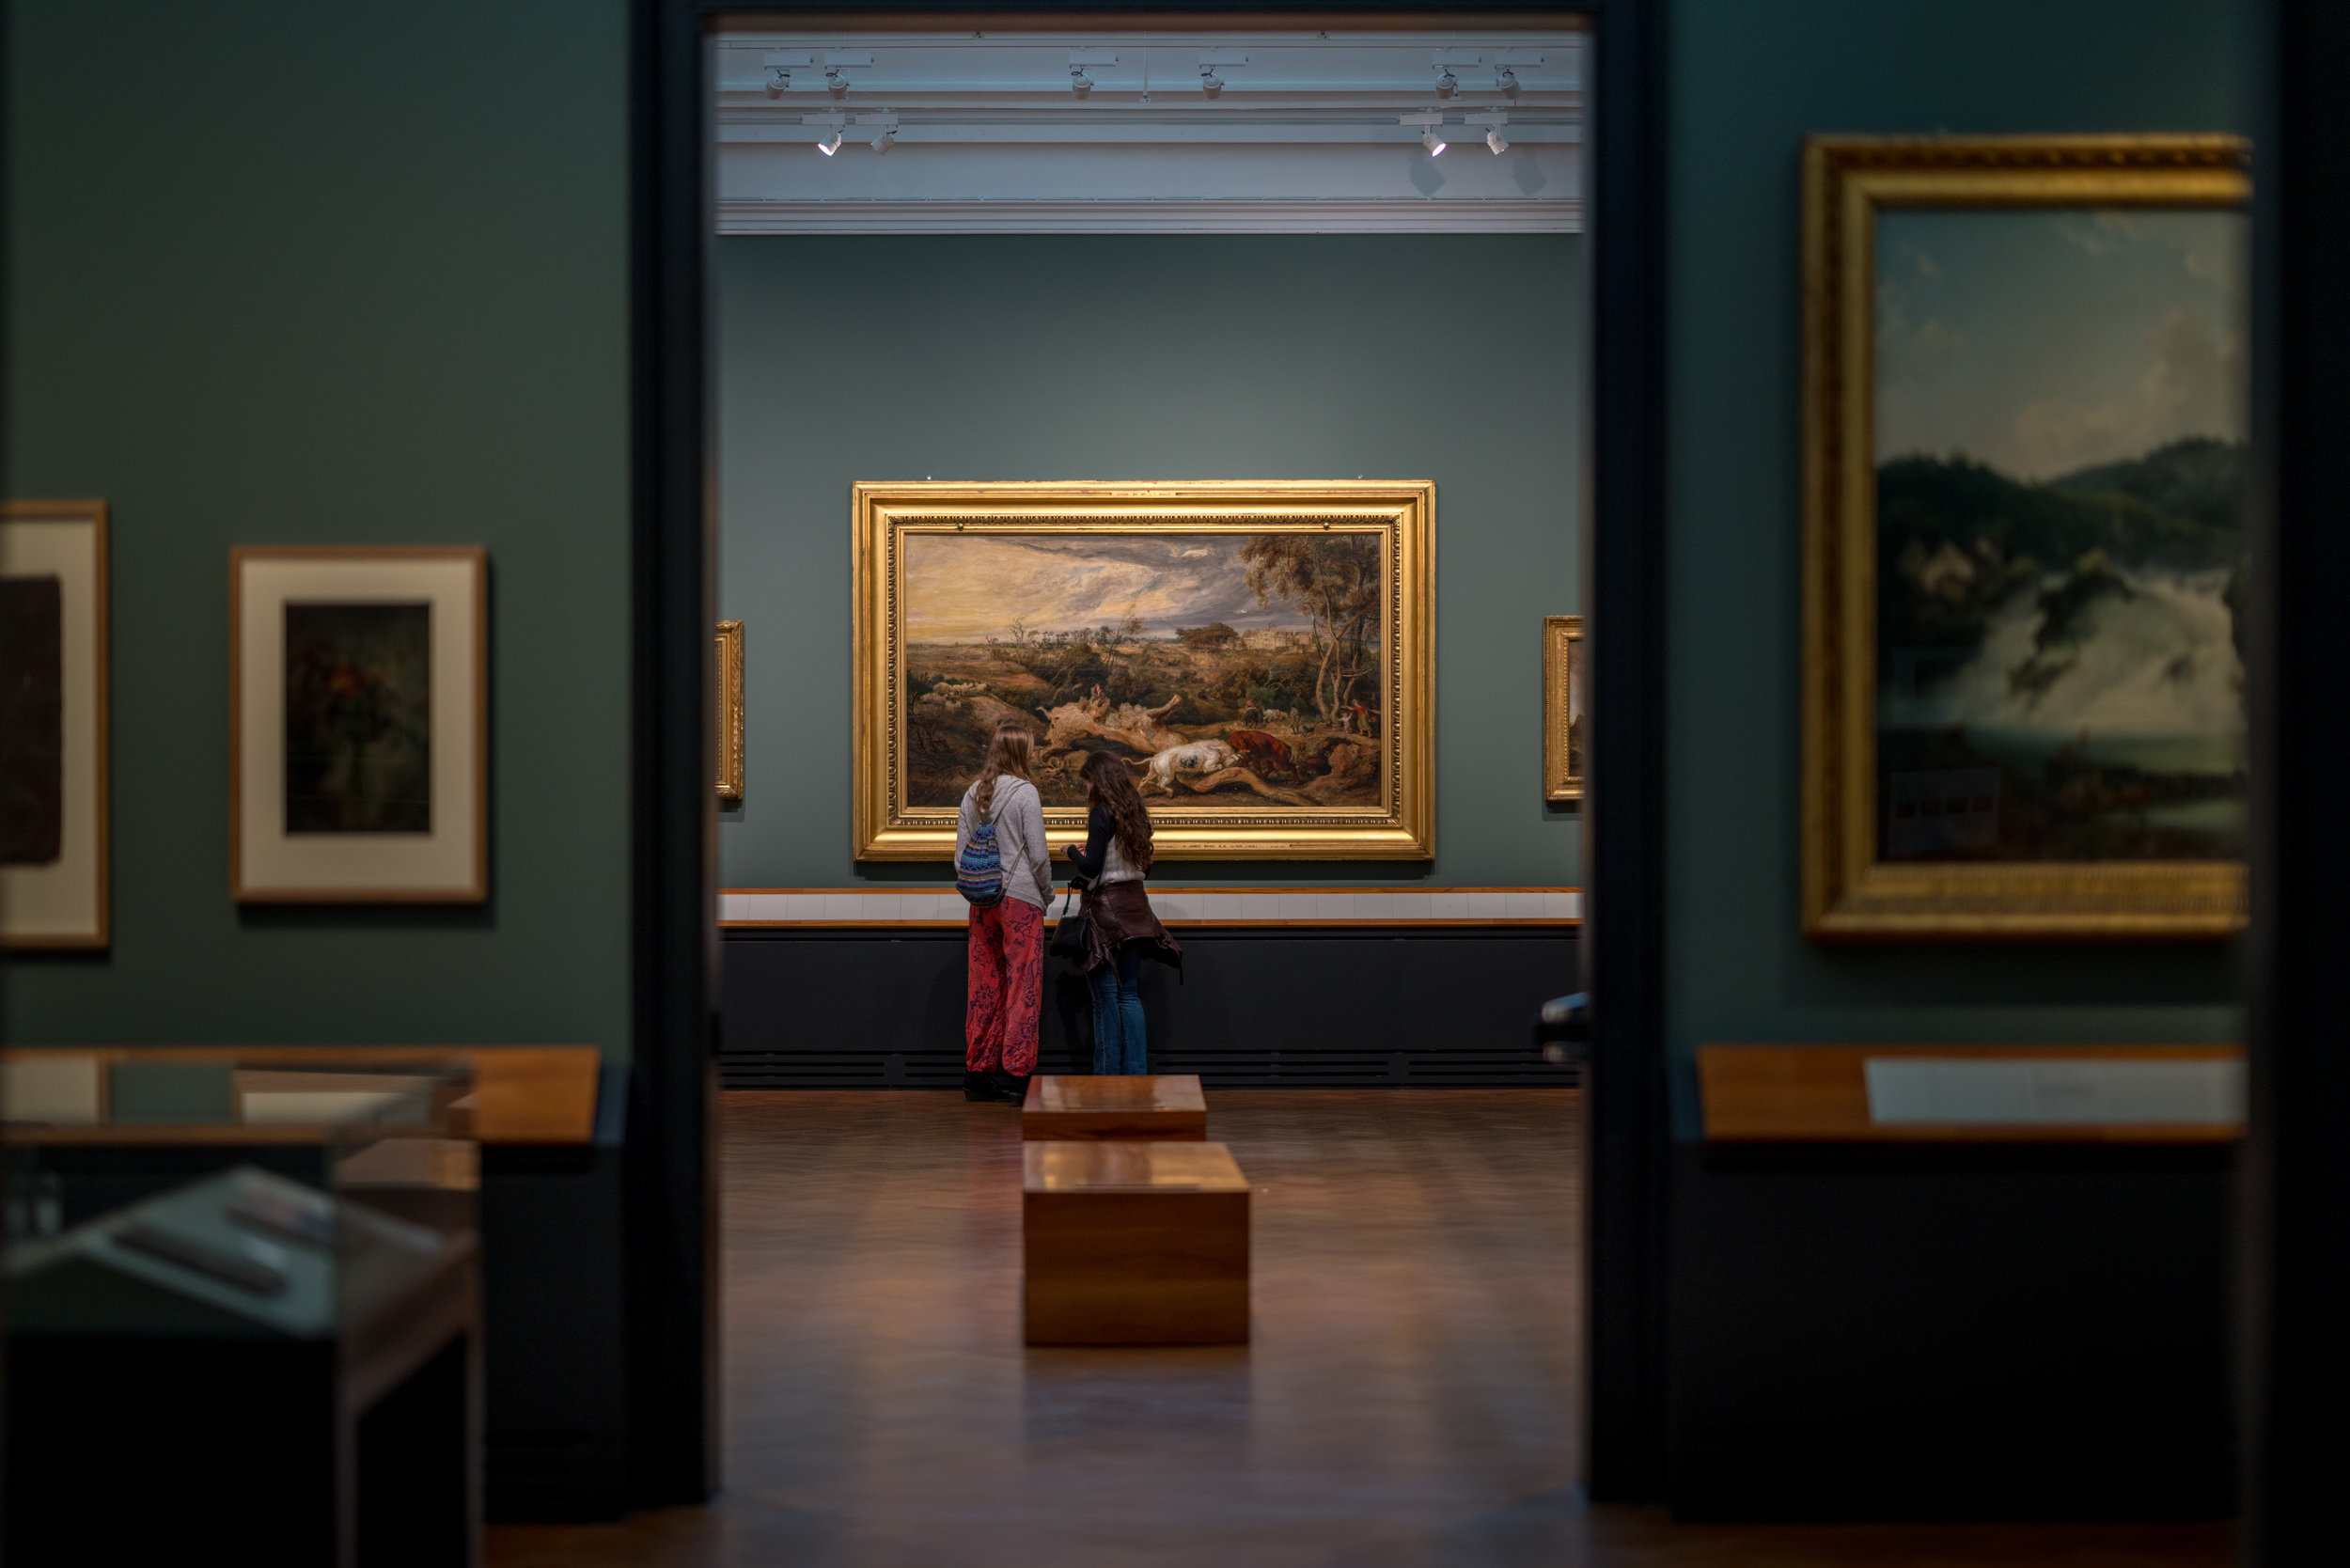 To people admiring a famous work of art.  85mm f1.4 iso 320 1/100